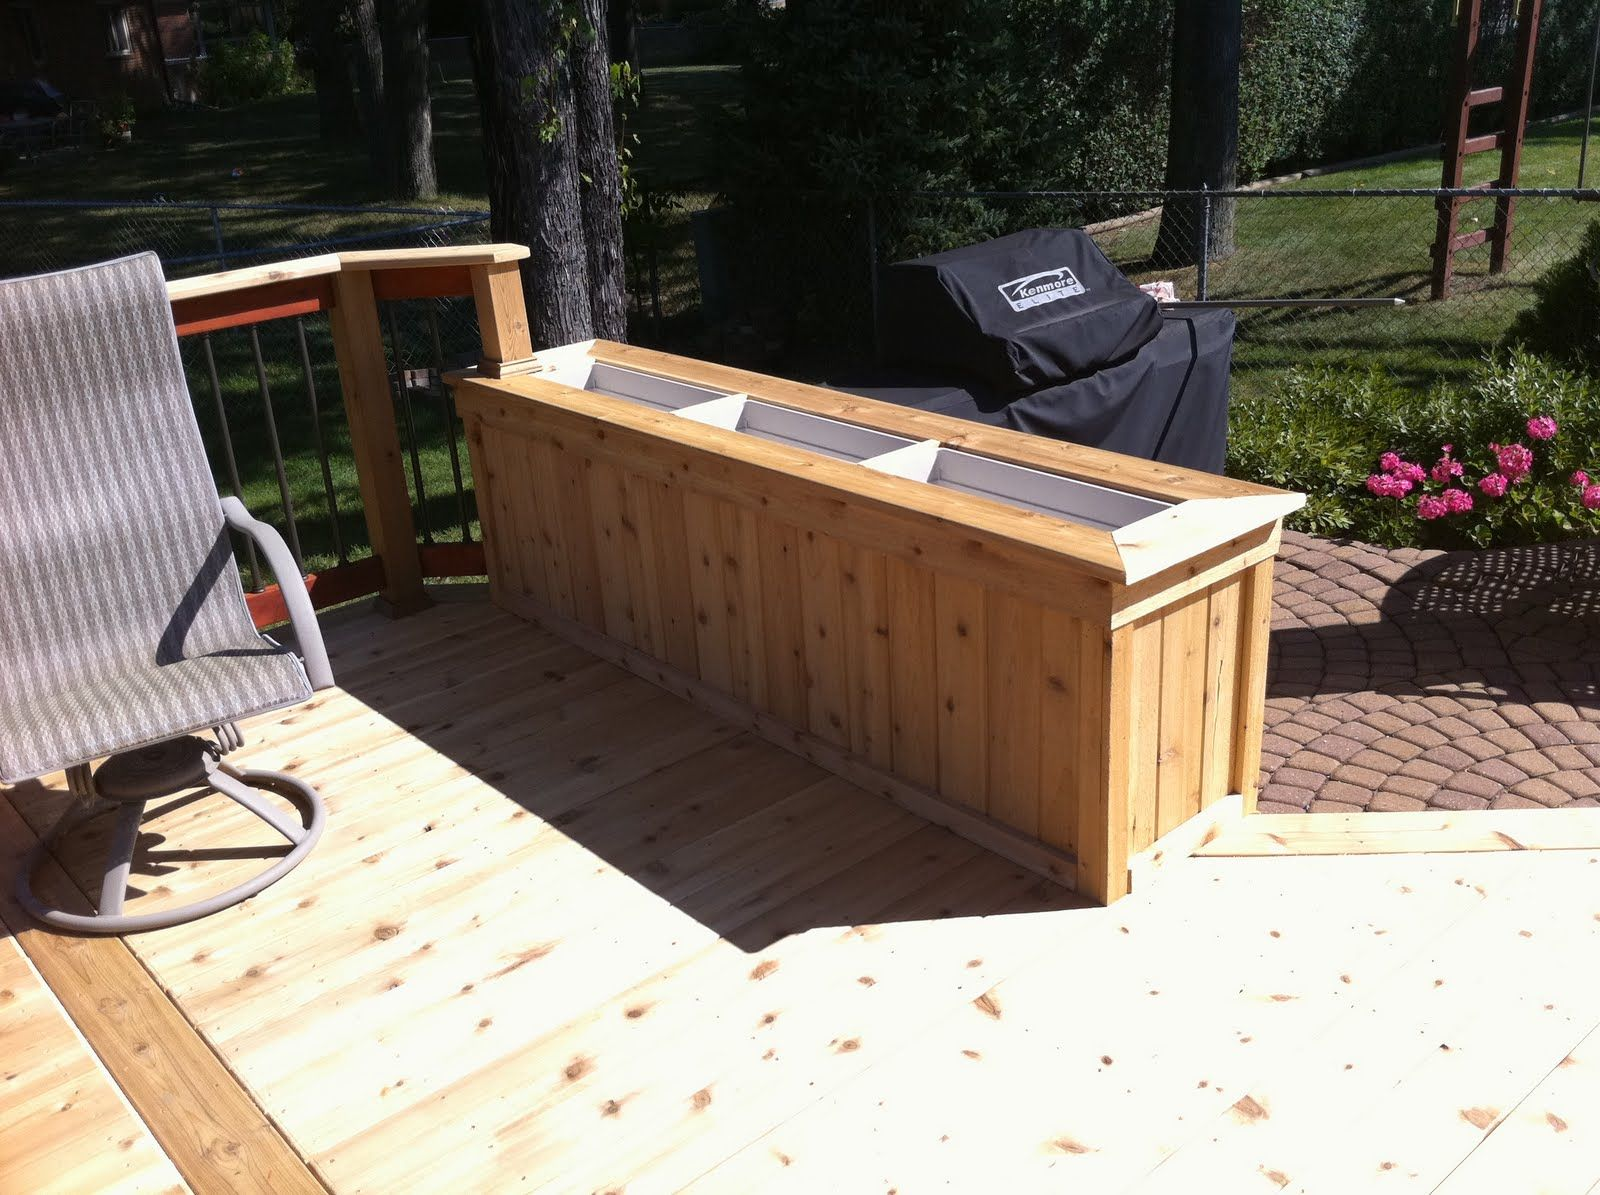 Deck planter boxes cedar planter box built from tongue and groove 1x6 1x4 trim and deck